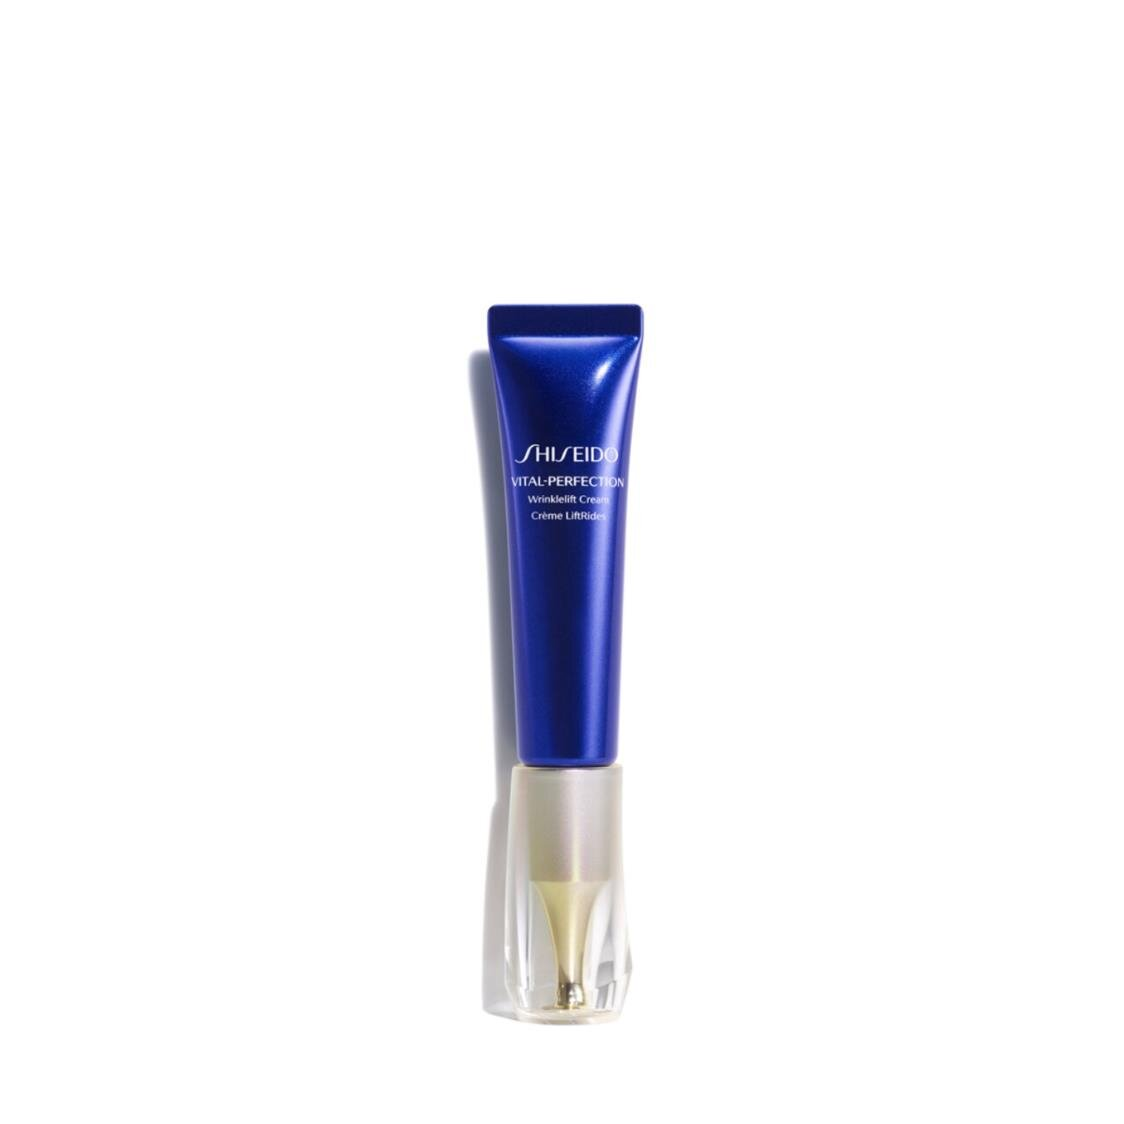 Vital-Perfection Wrinklelift Cream 15ml